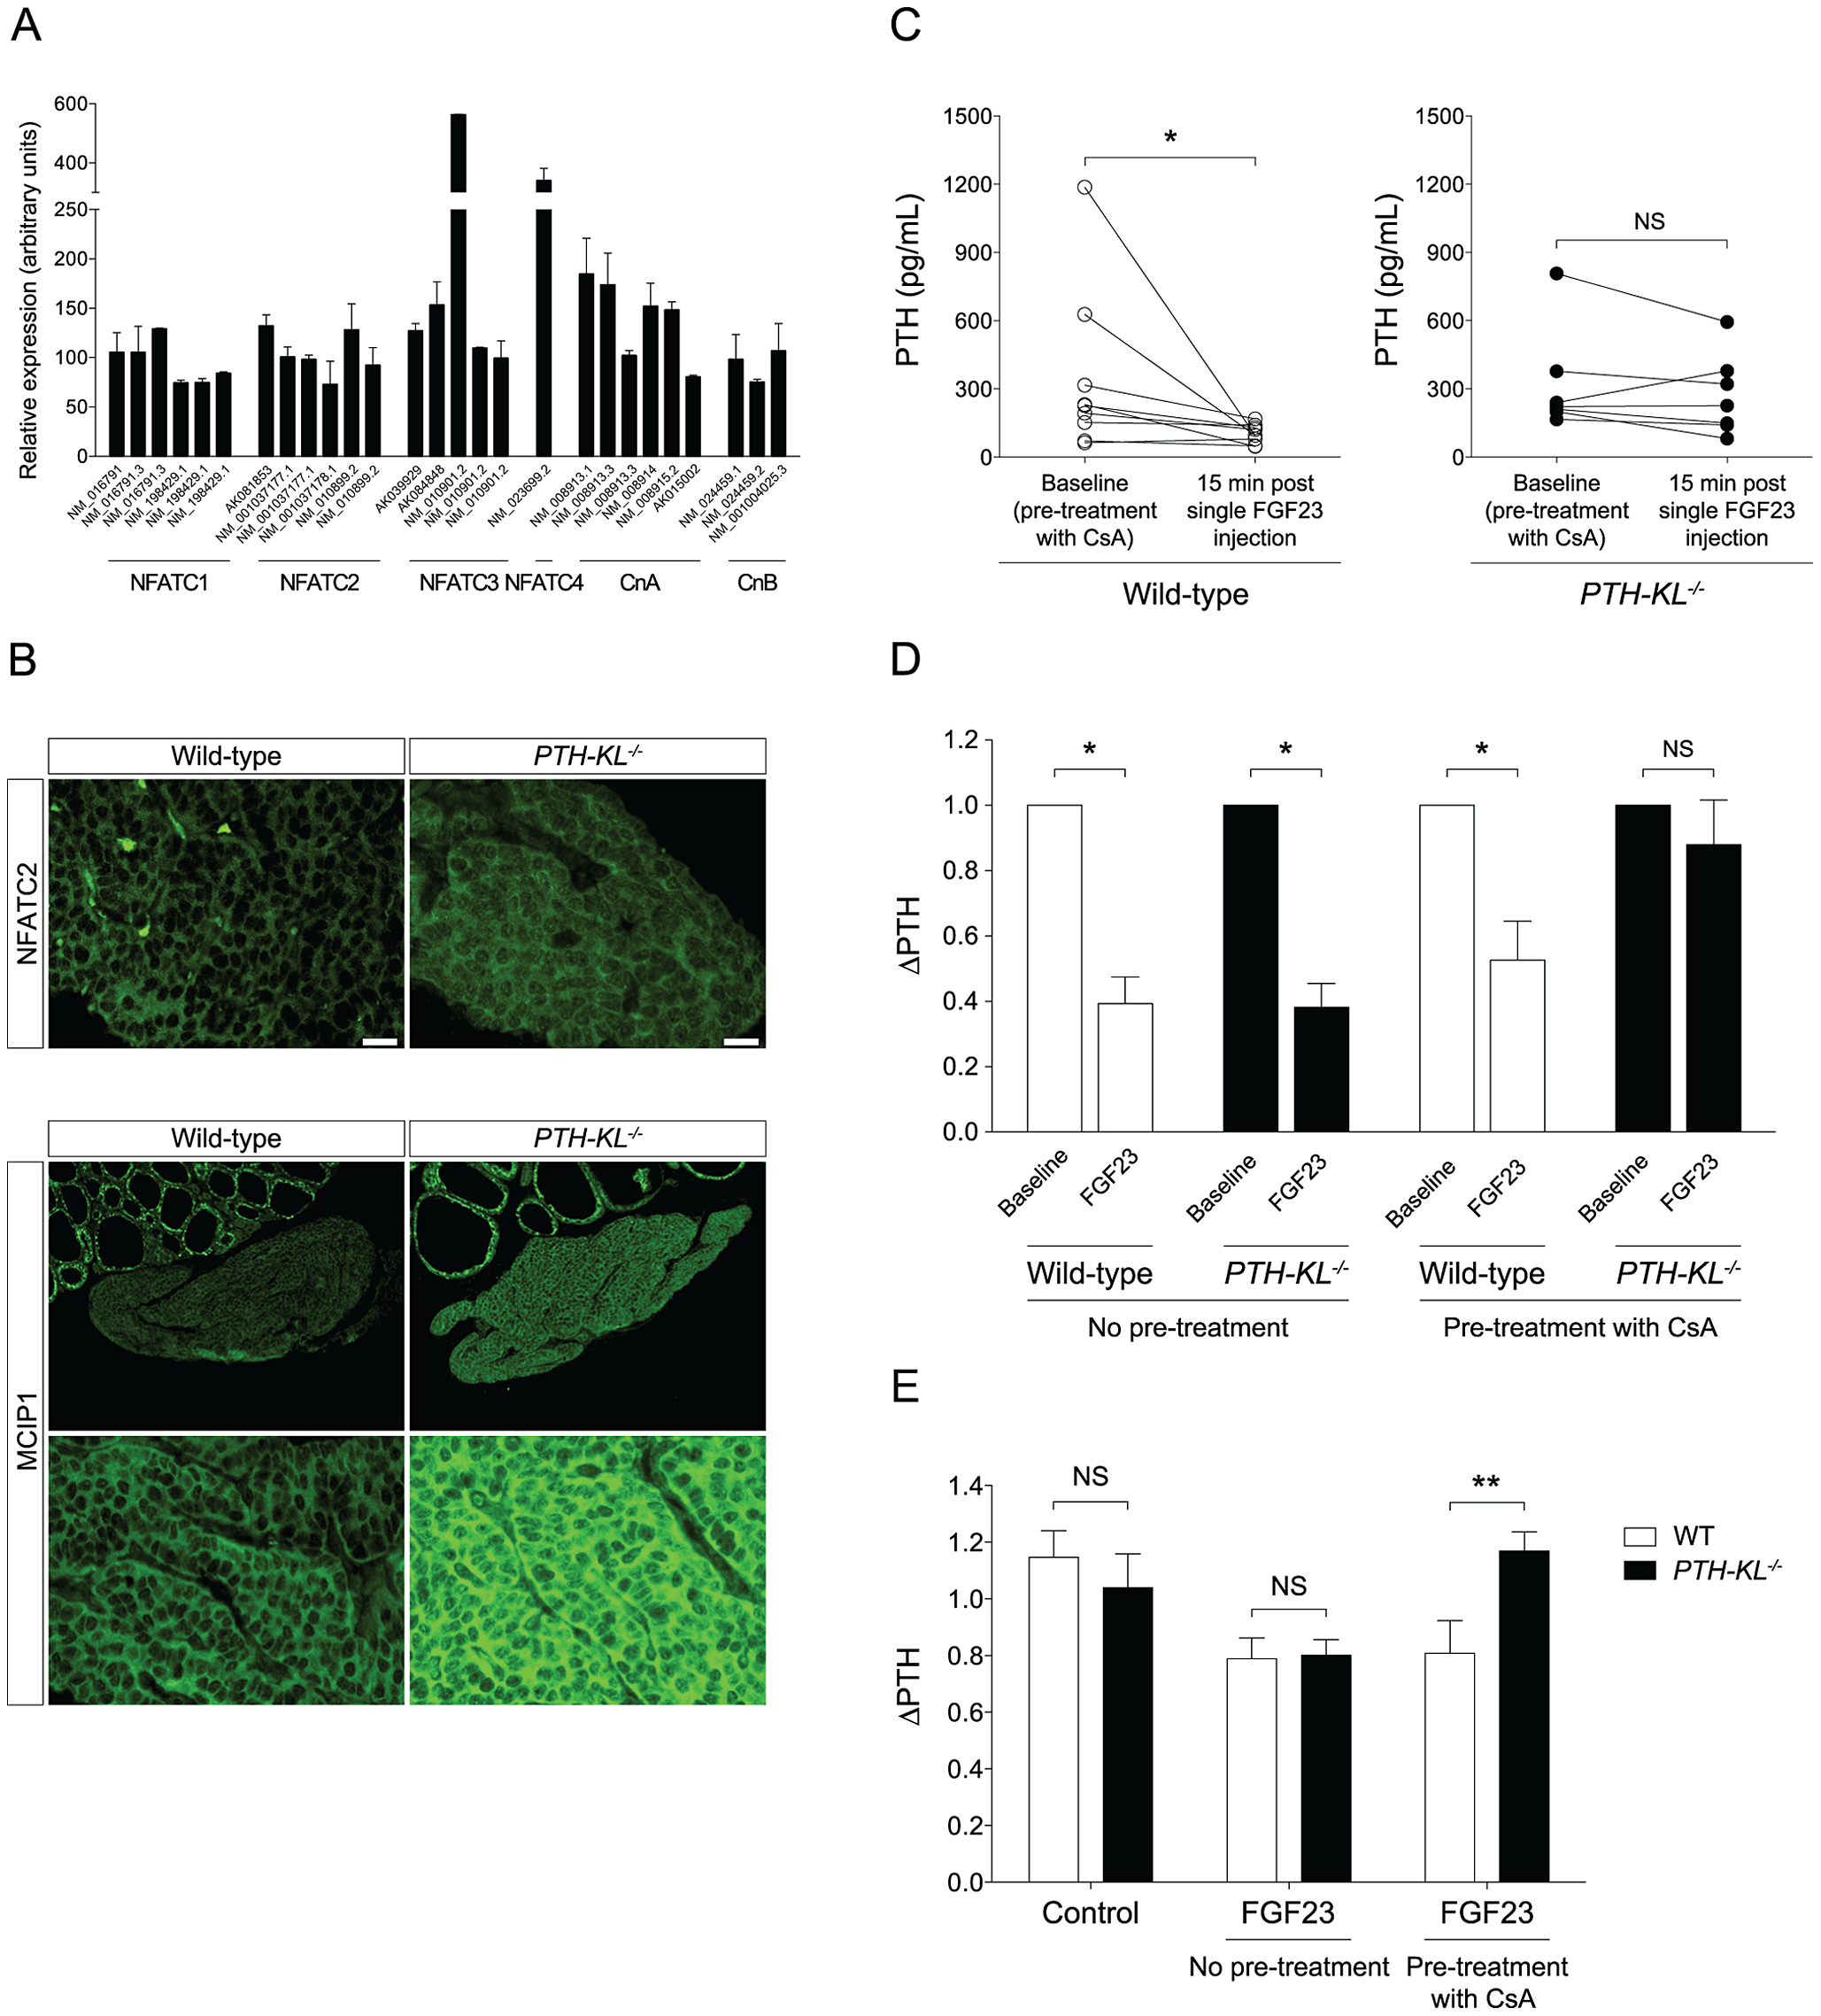 Presence of the calcineurin-NFAT pathway and the impact of cyclosporin A on FGF23 treatment.